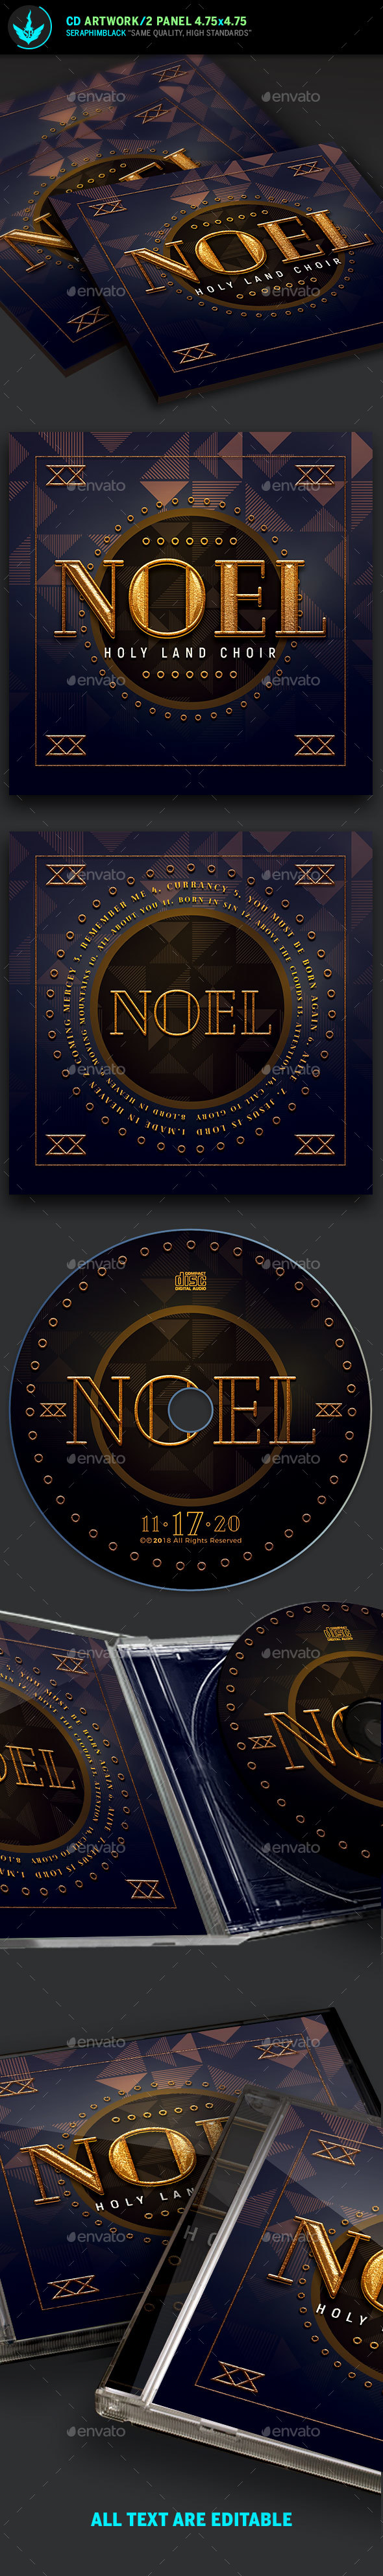 Noel Christmas CD Artwork Template - CD & DVD Artwork Print Templates